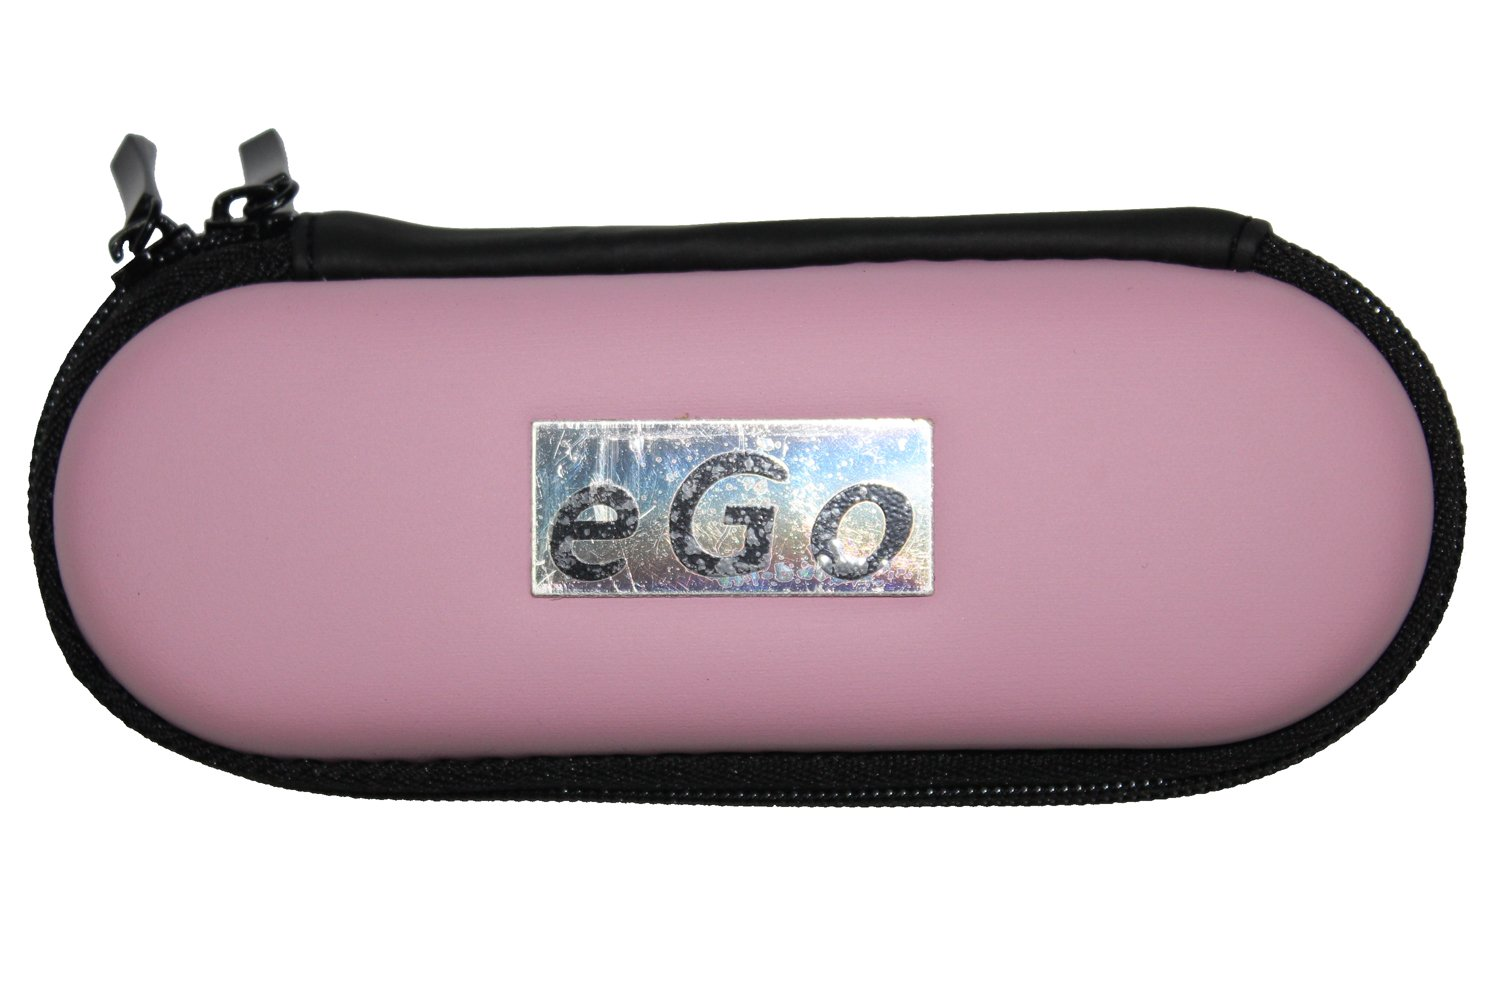 Baolifeng eGo Electronic Cigarette Cigar Box Travel Carry Case (Small, Pink)